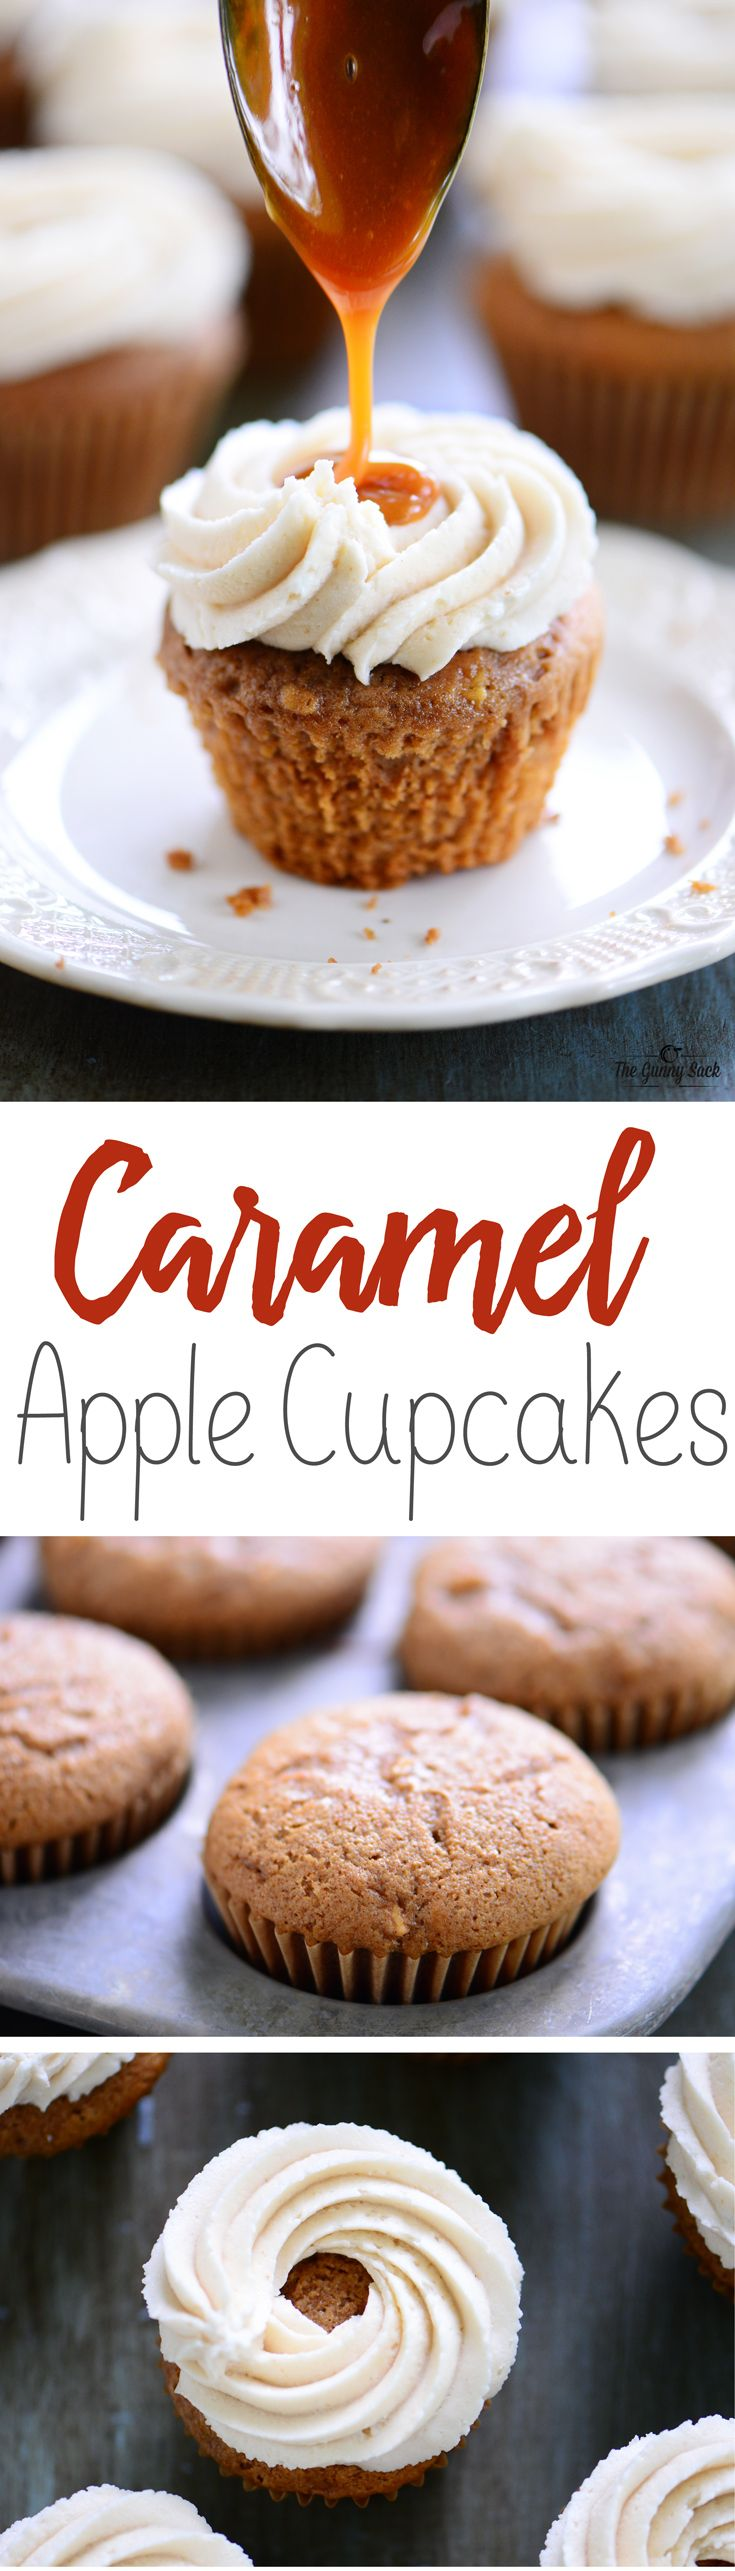 Mouthwatering Fall Dessert Recipe: Caramel Apple Cupcakes made with easy apple cupcakes, cream cheese buttercream frosting and warm caramel drizzled on top. #AppleButterSpin #ad